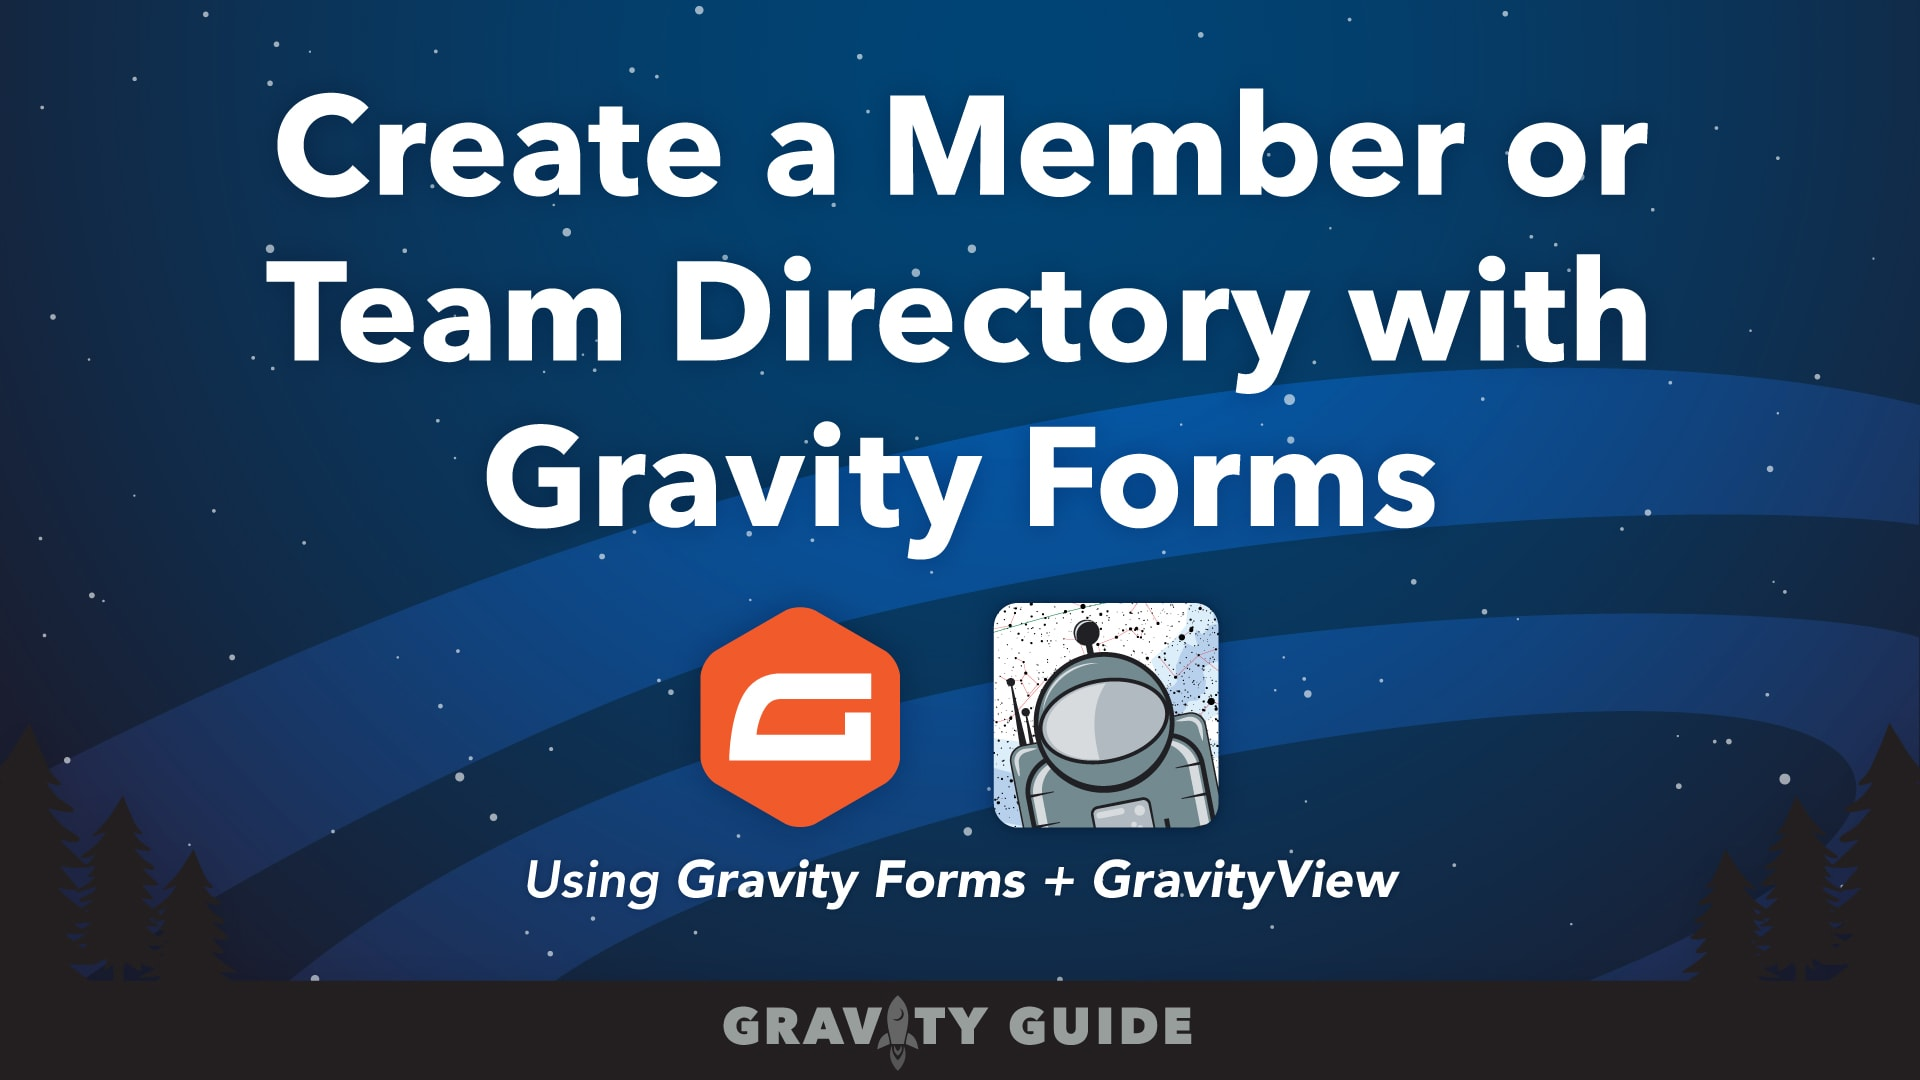 Create a Member or Team Member Directory with Gravity Forms